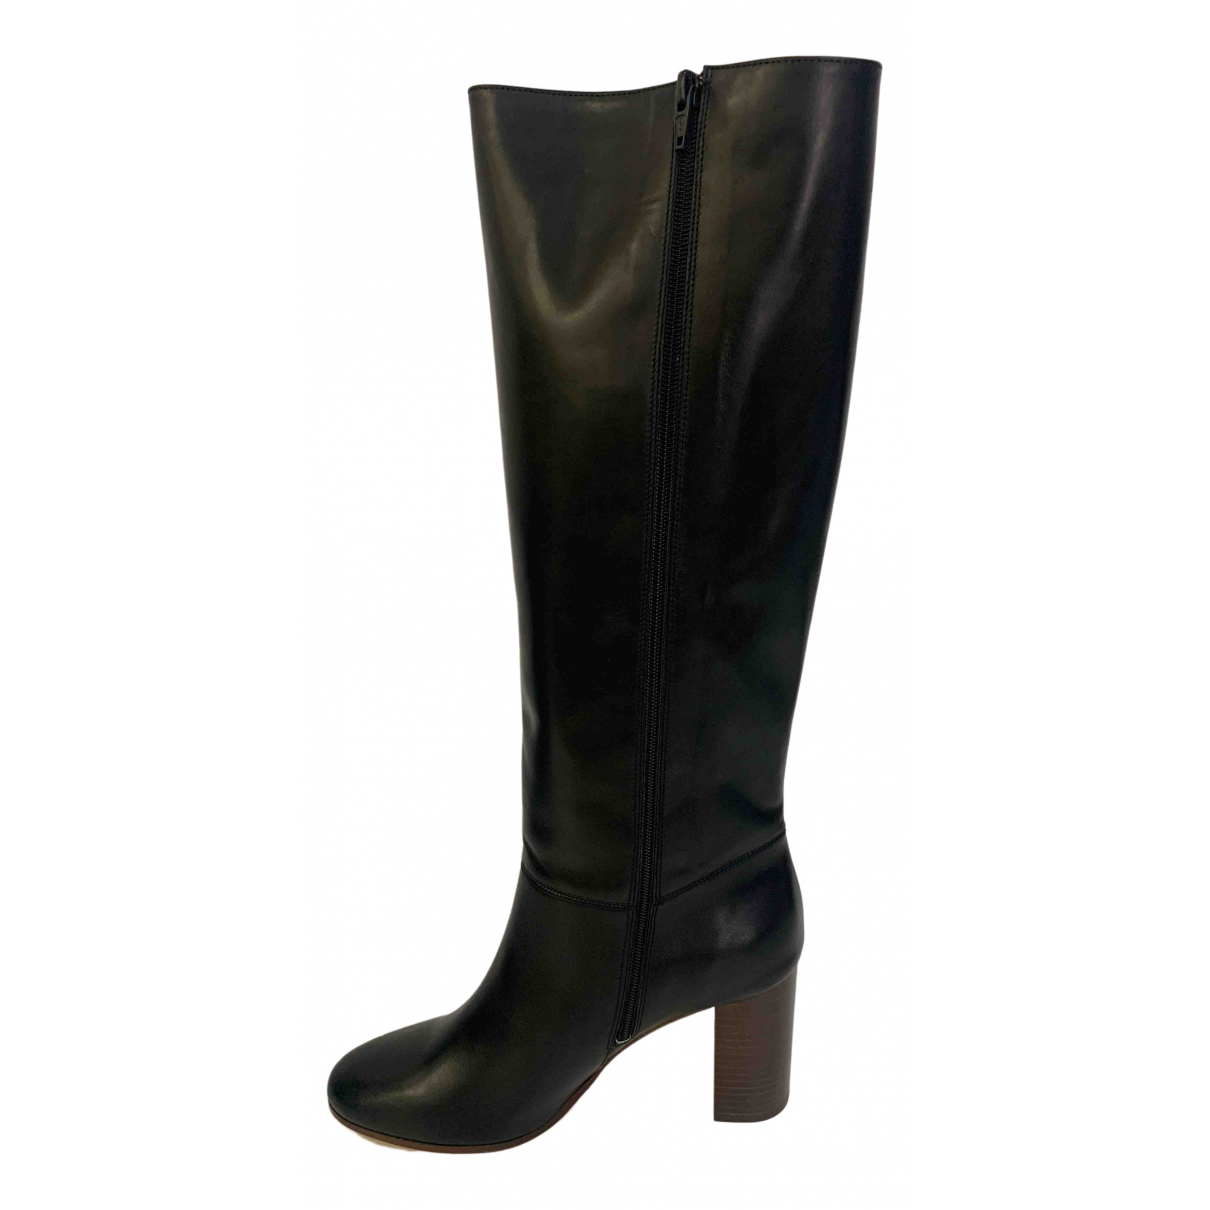 Maje \N Black Leather Boots for Women 39 EU